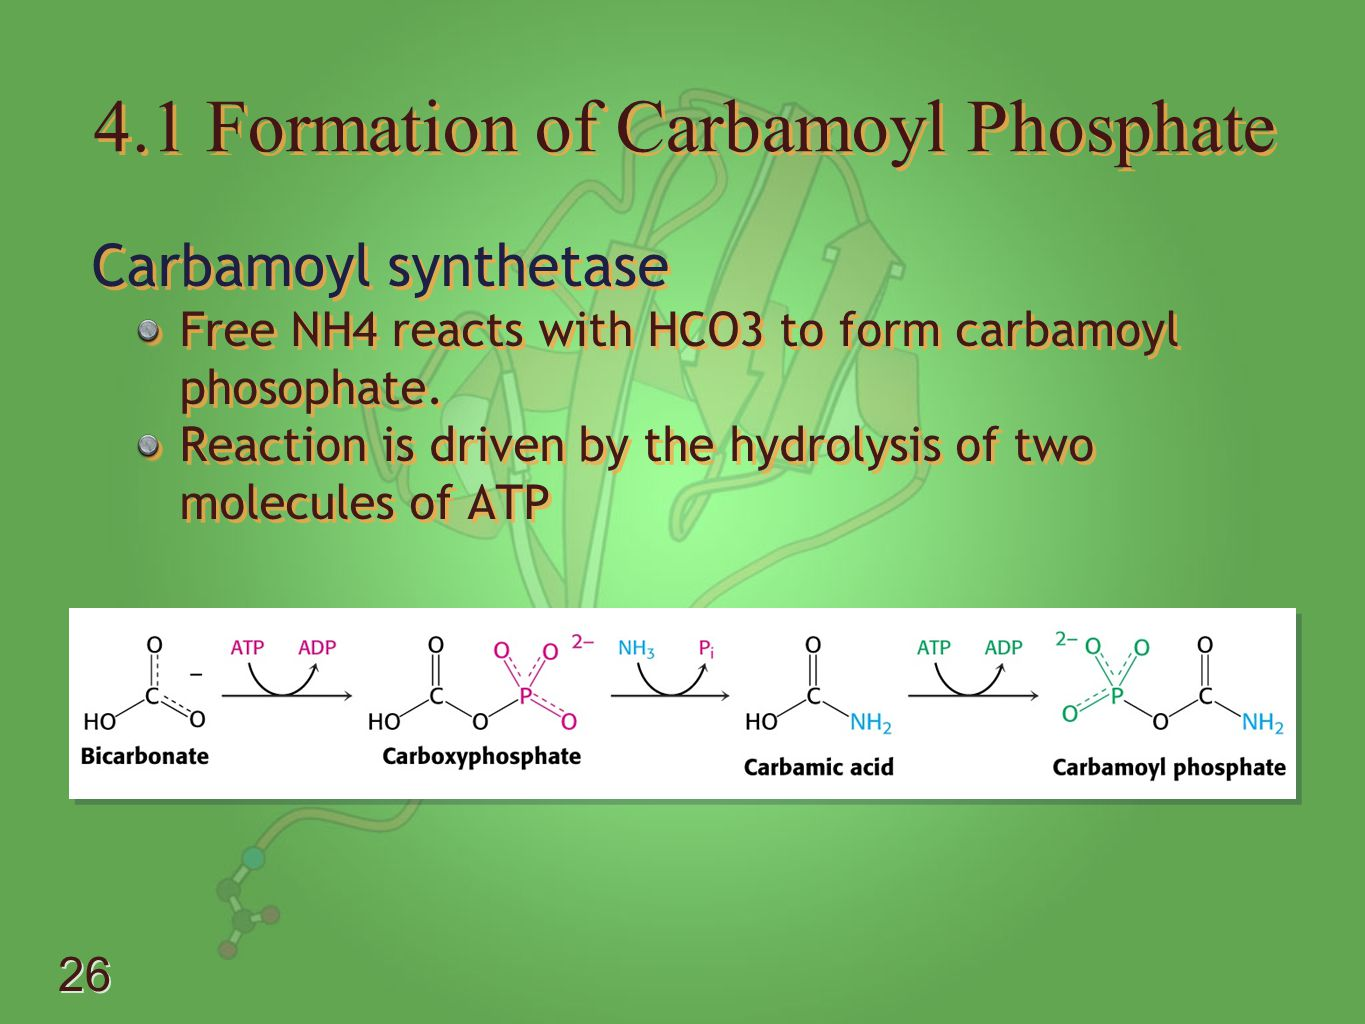 4.1 Formation of Carbamoyl Phosphate